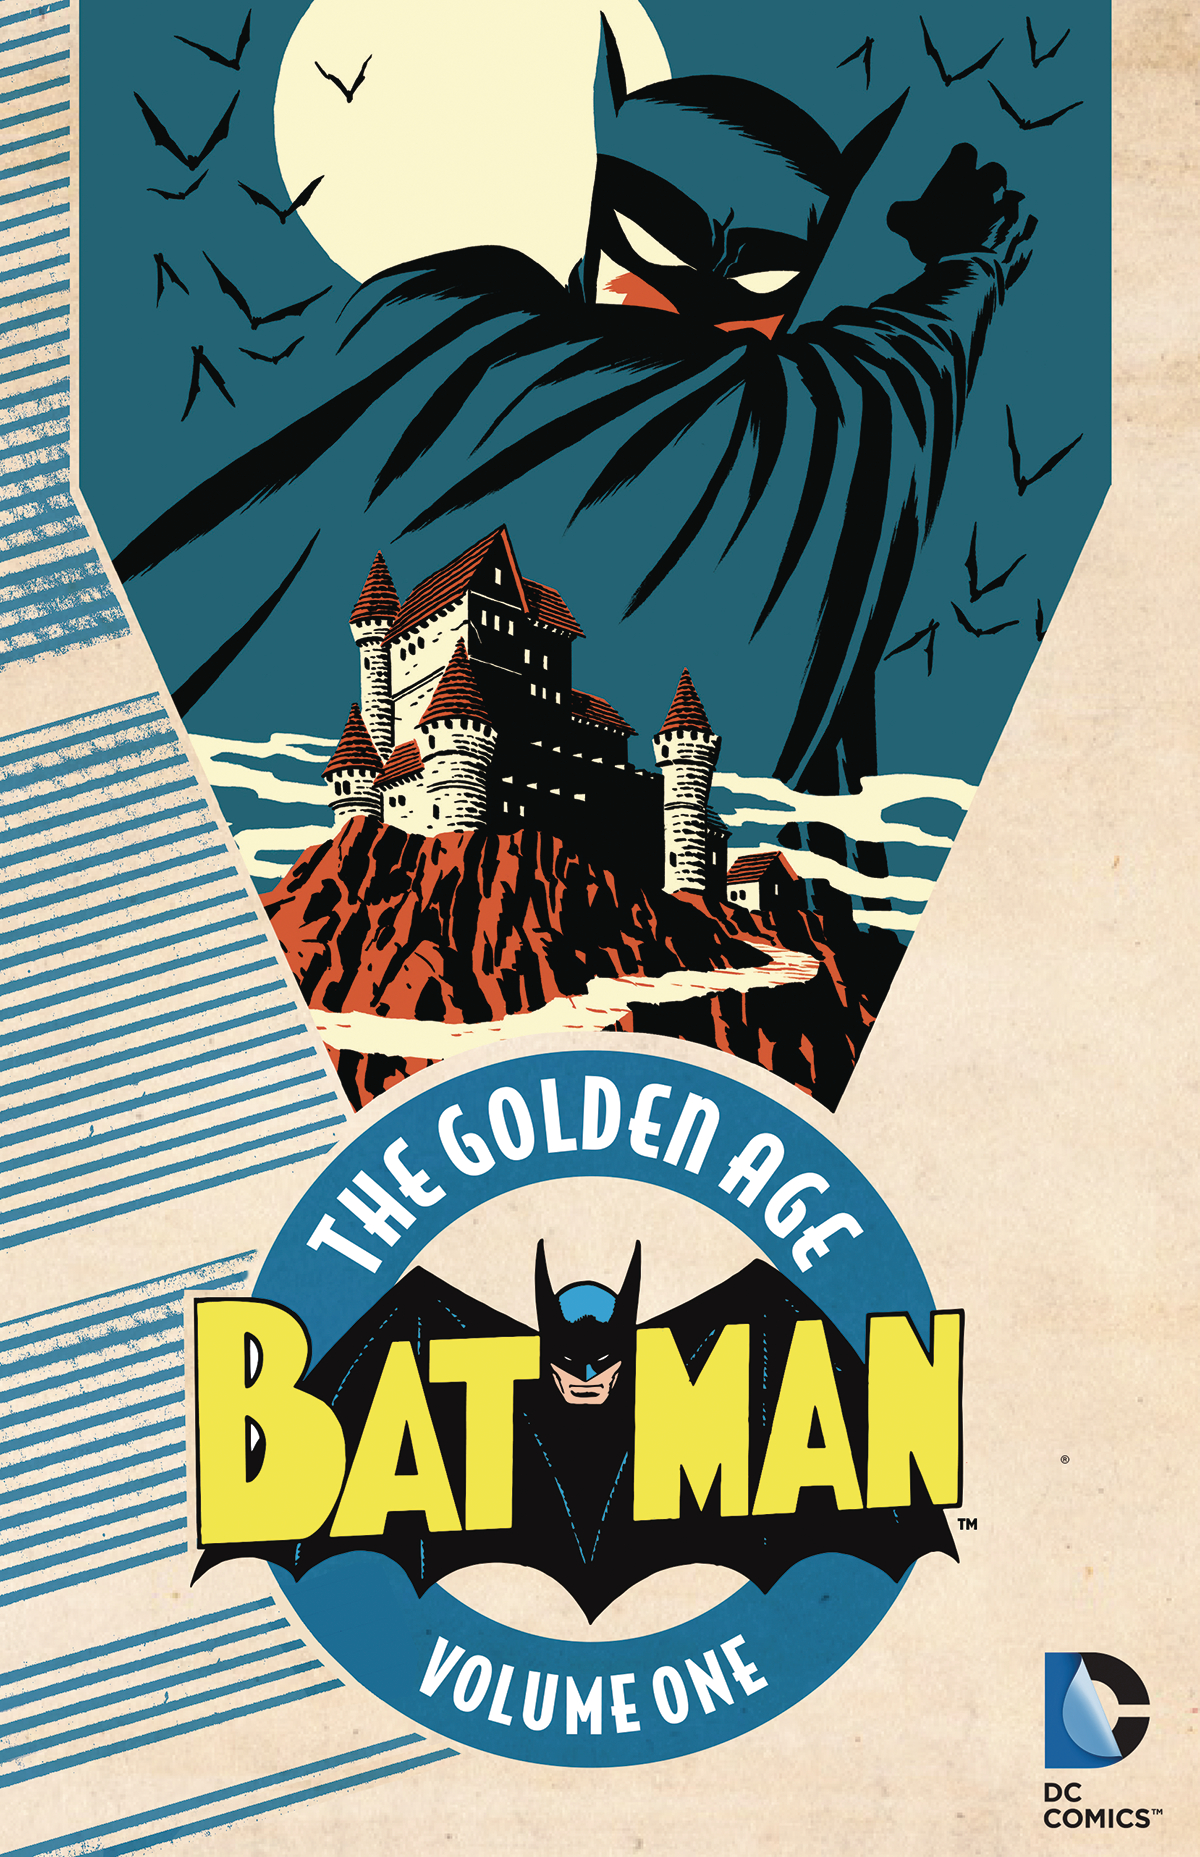 Batman: The Golden Age Vol. 1 (Collected)